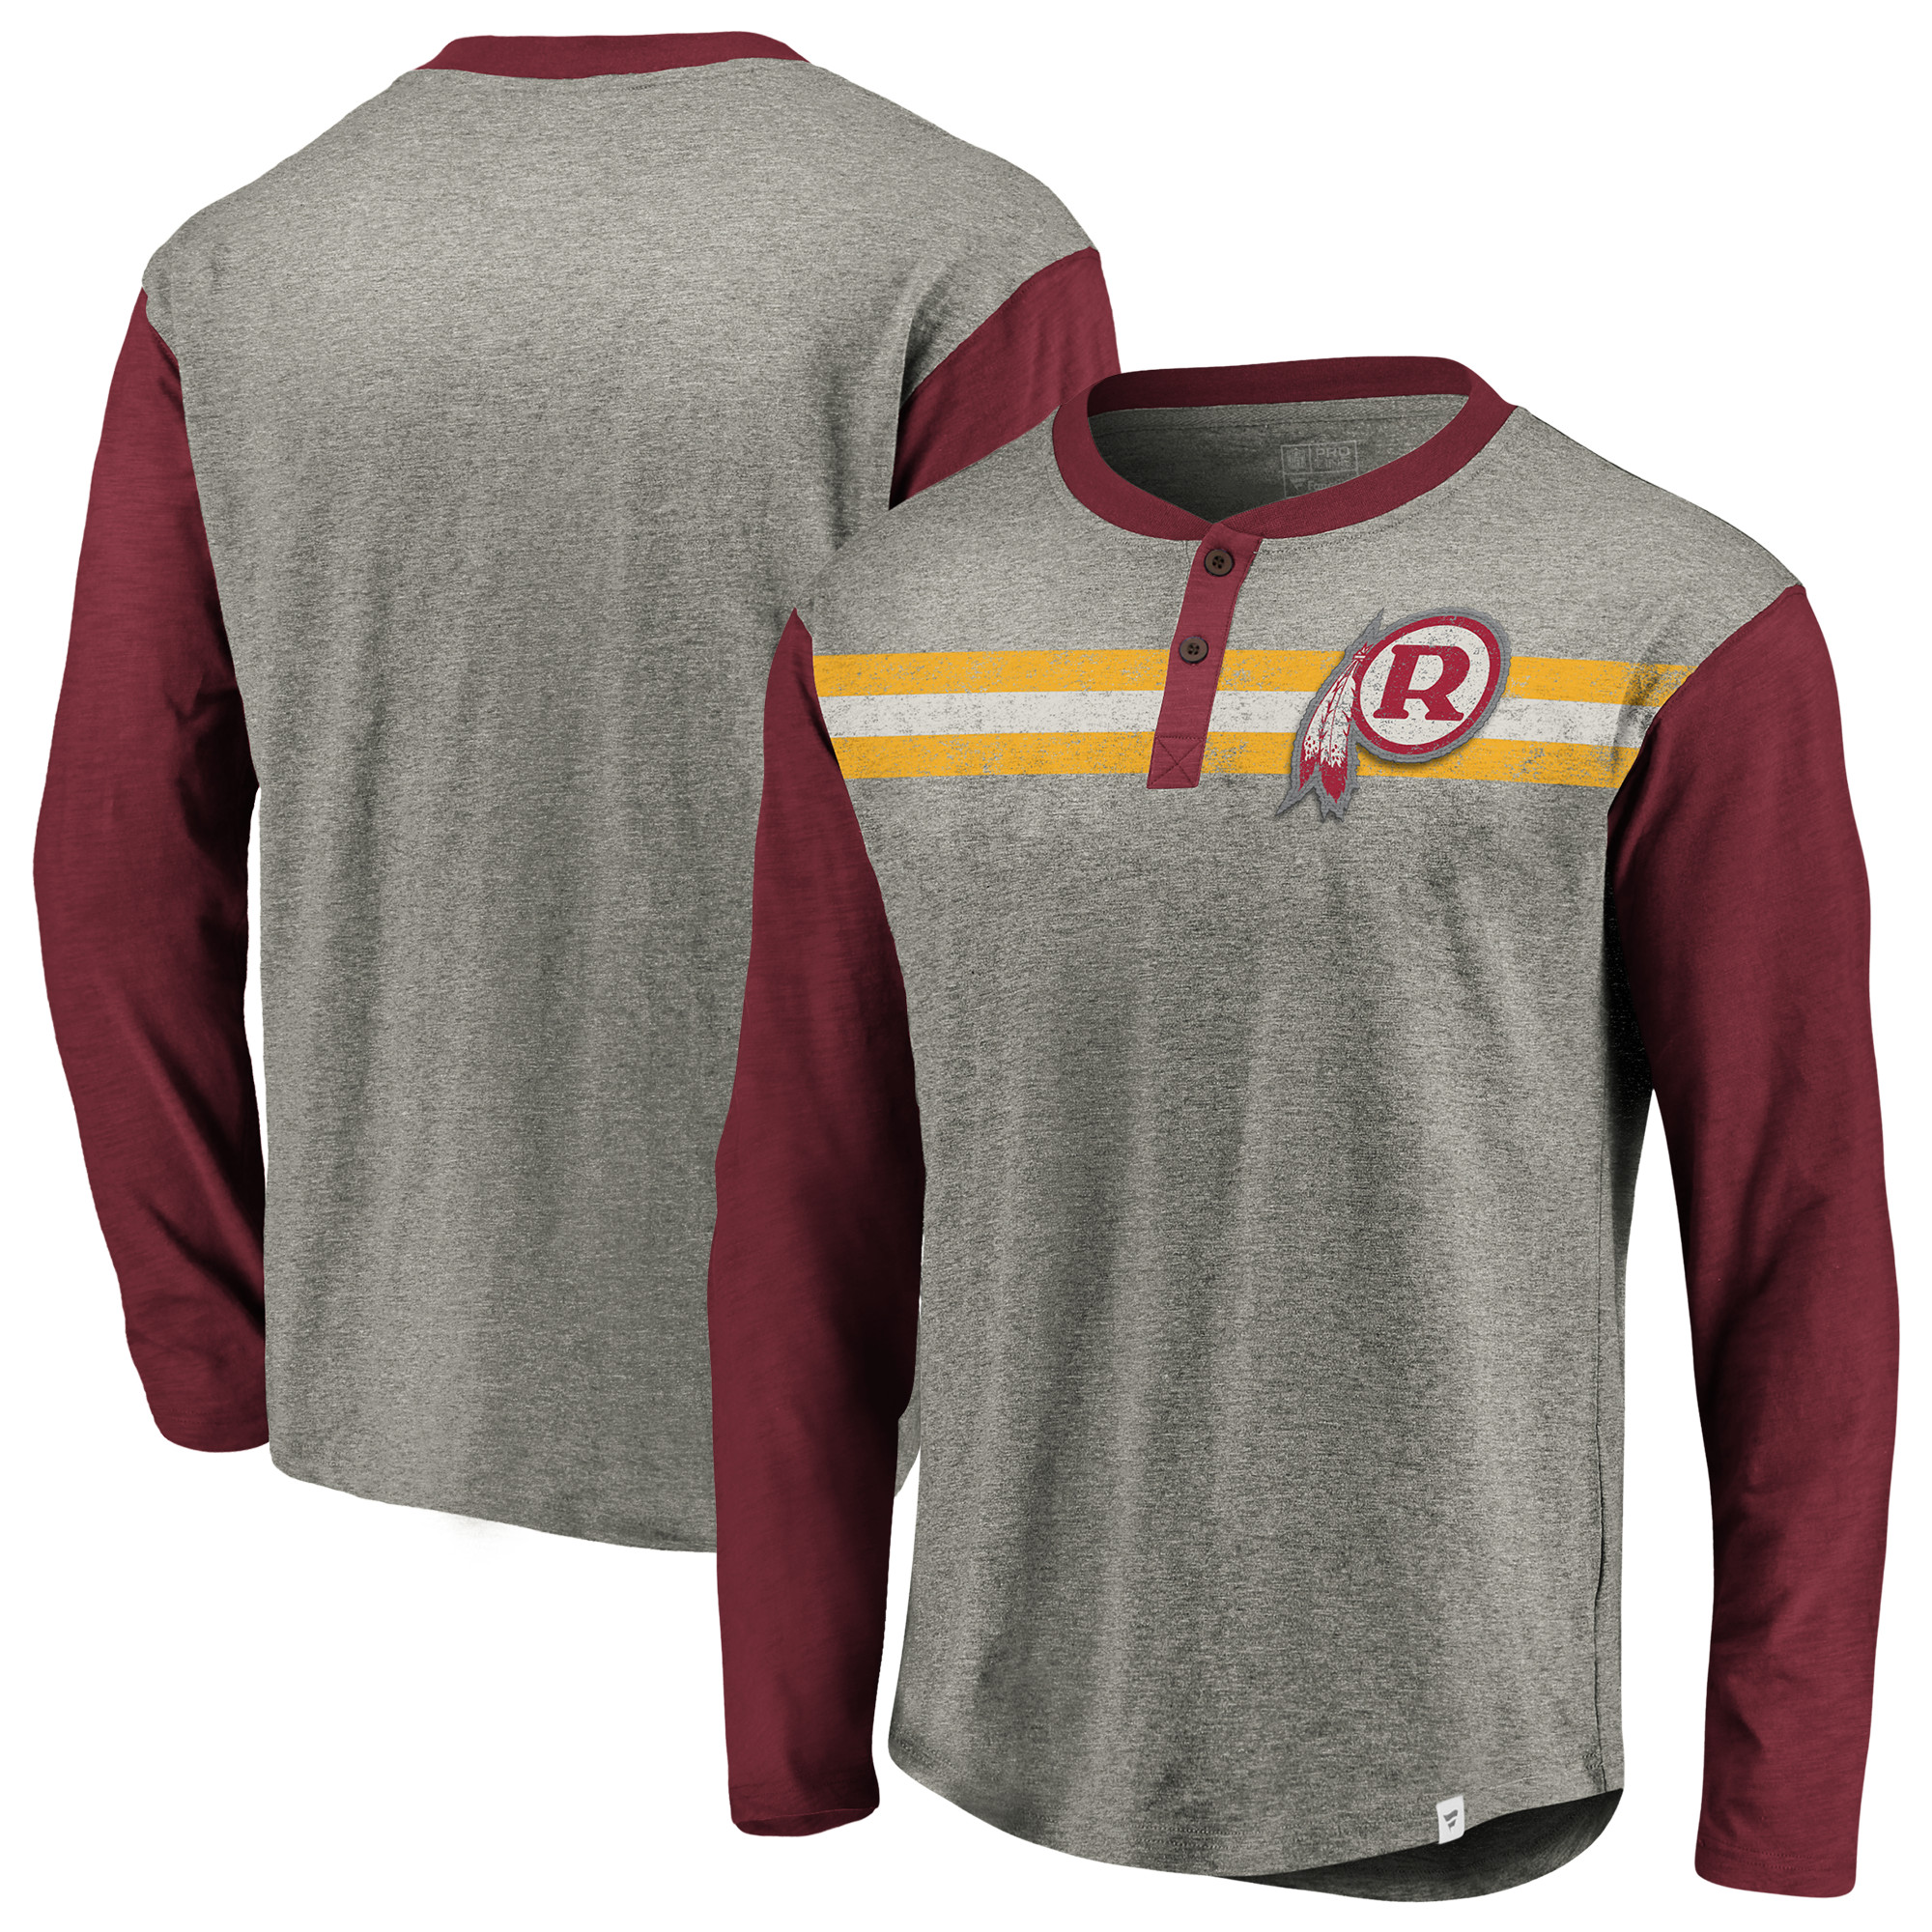 Washington Redskins NFL Pro Line by Fanatics Branded Big & Tall True Classics Henley Long Sleeve T-Shirt - Heathered Gray/Burgundy